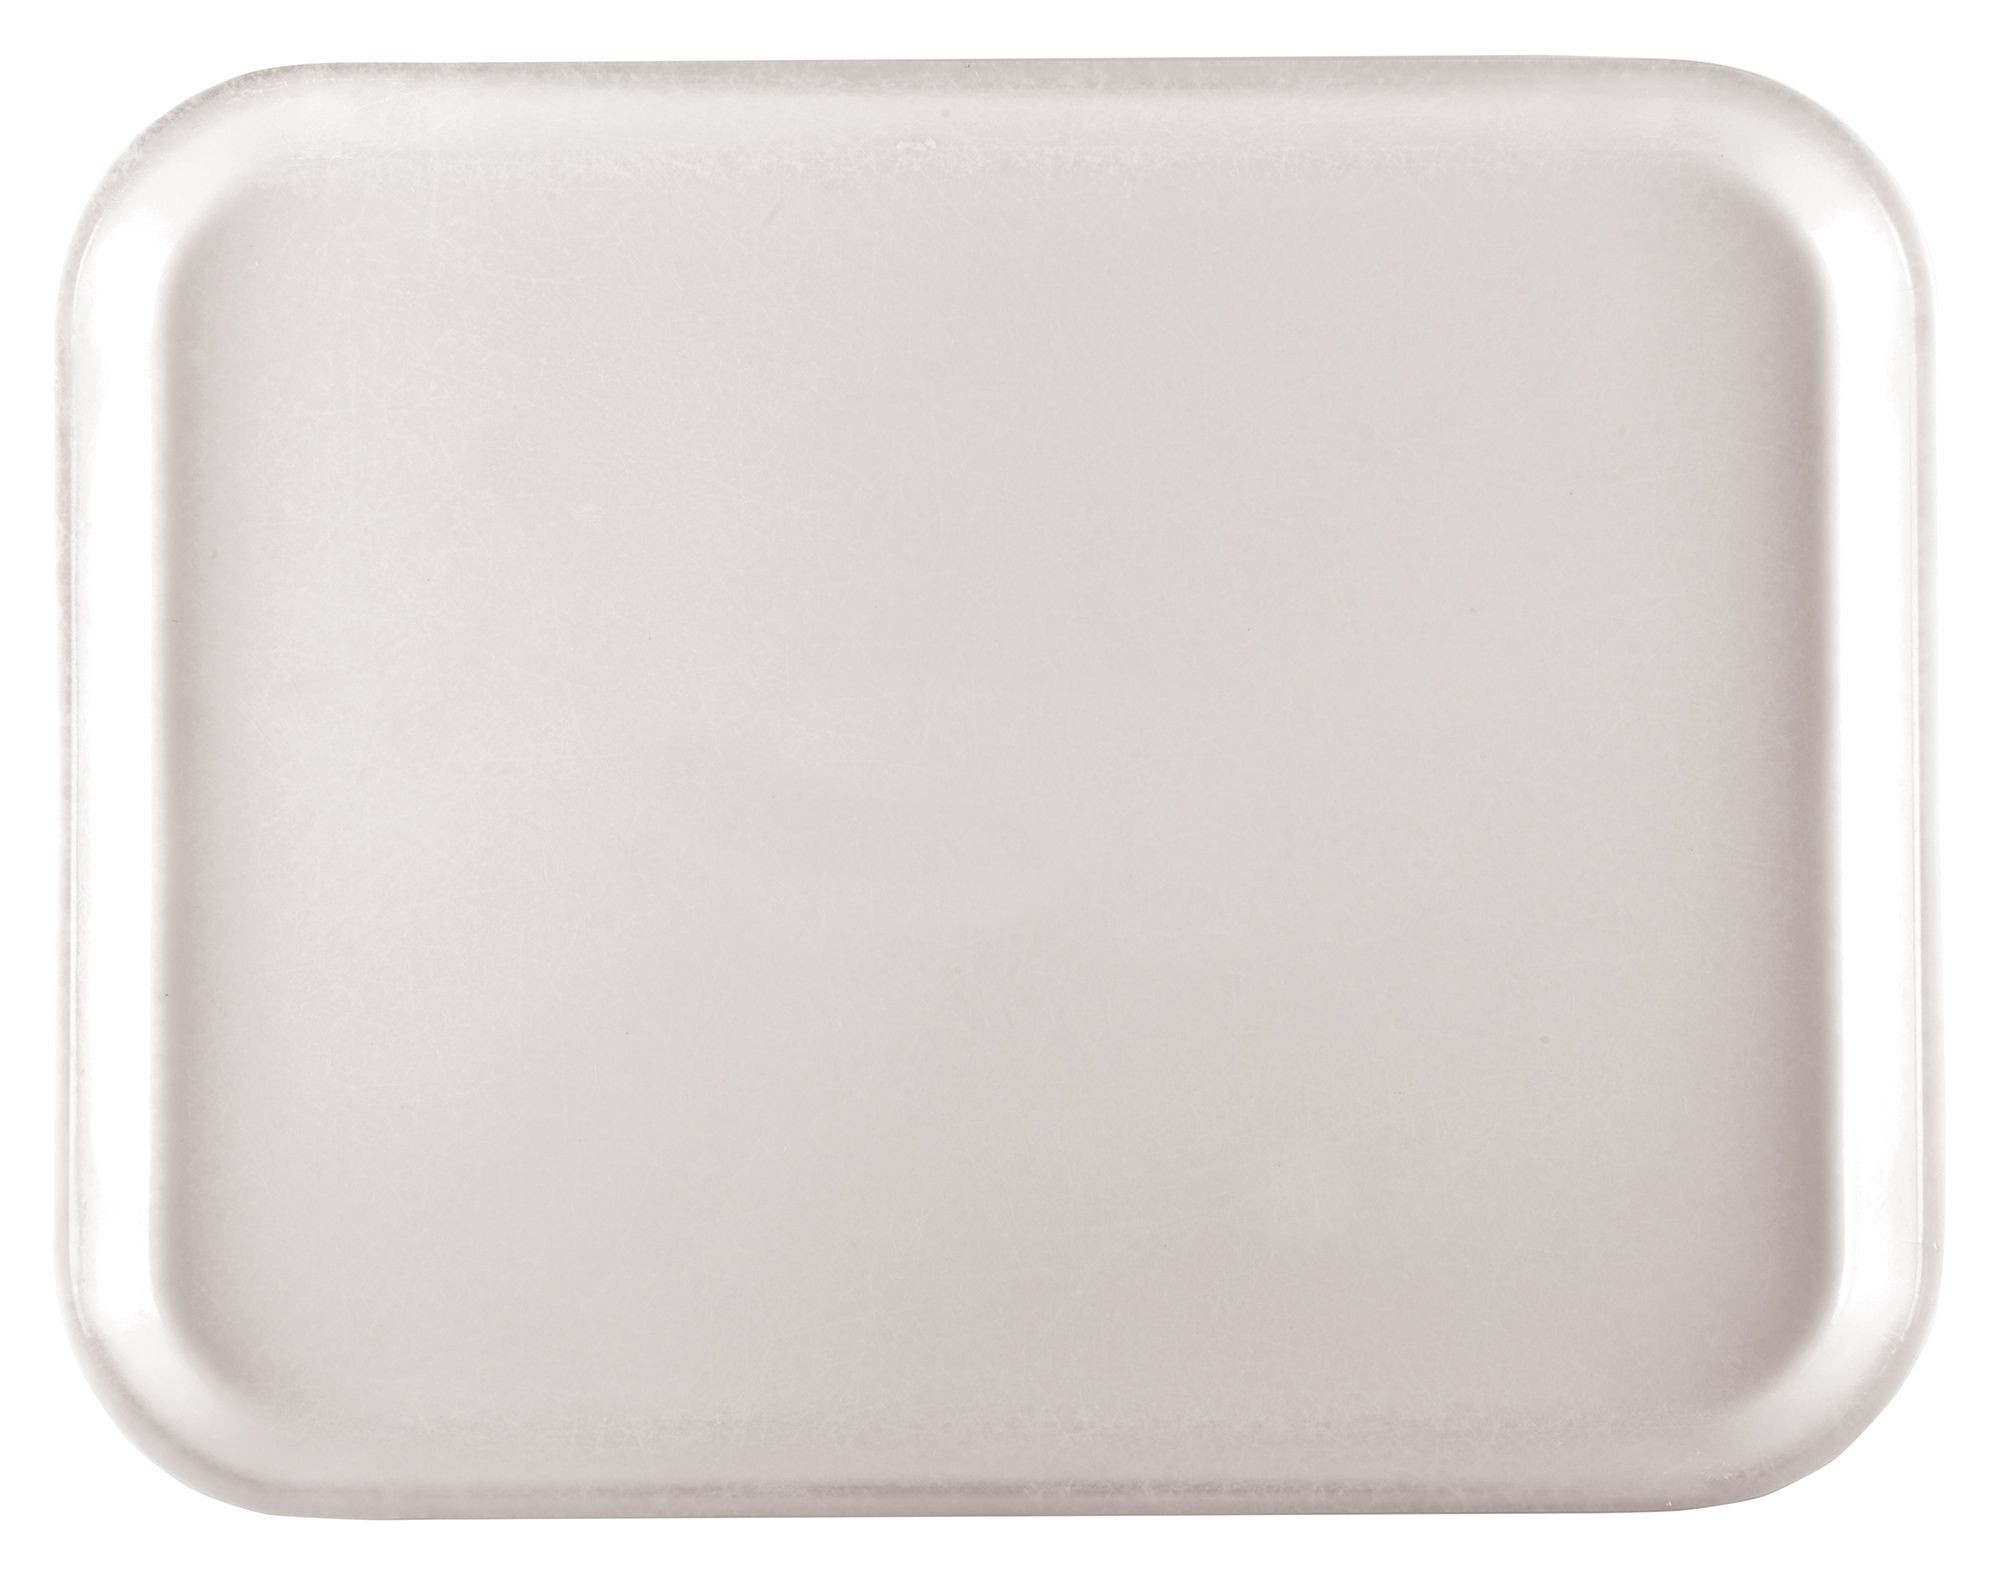 Fiberglass Tray, White, 12''x16'' Rectangular